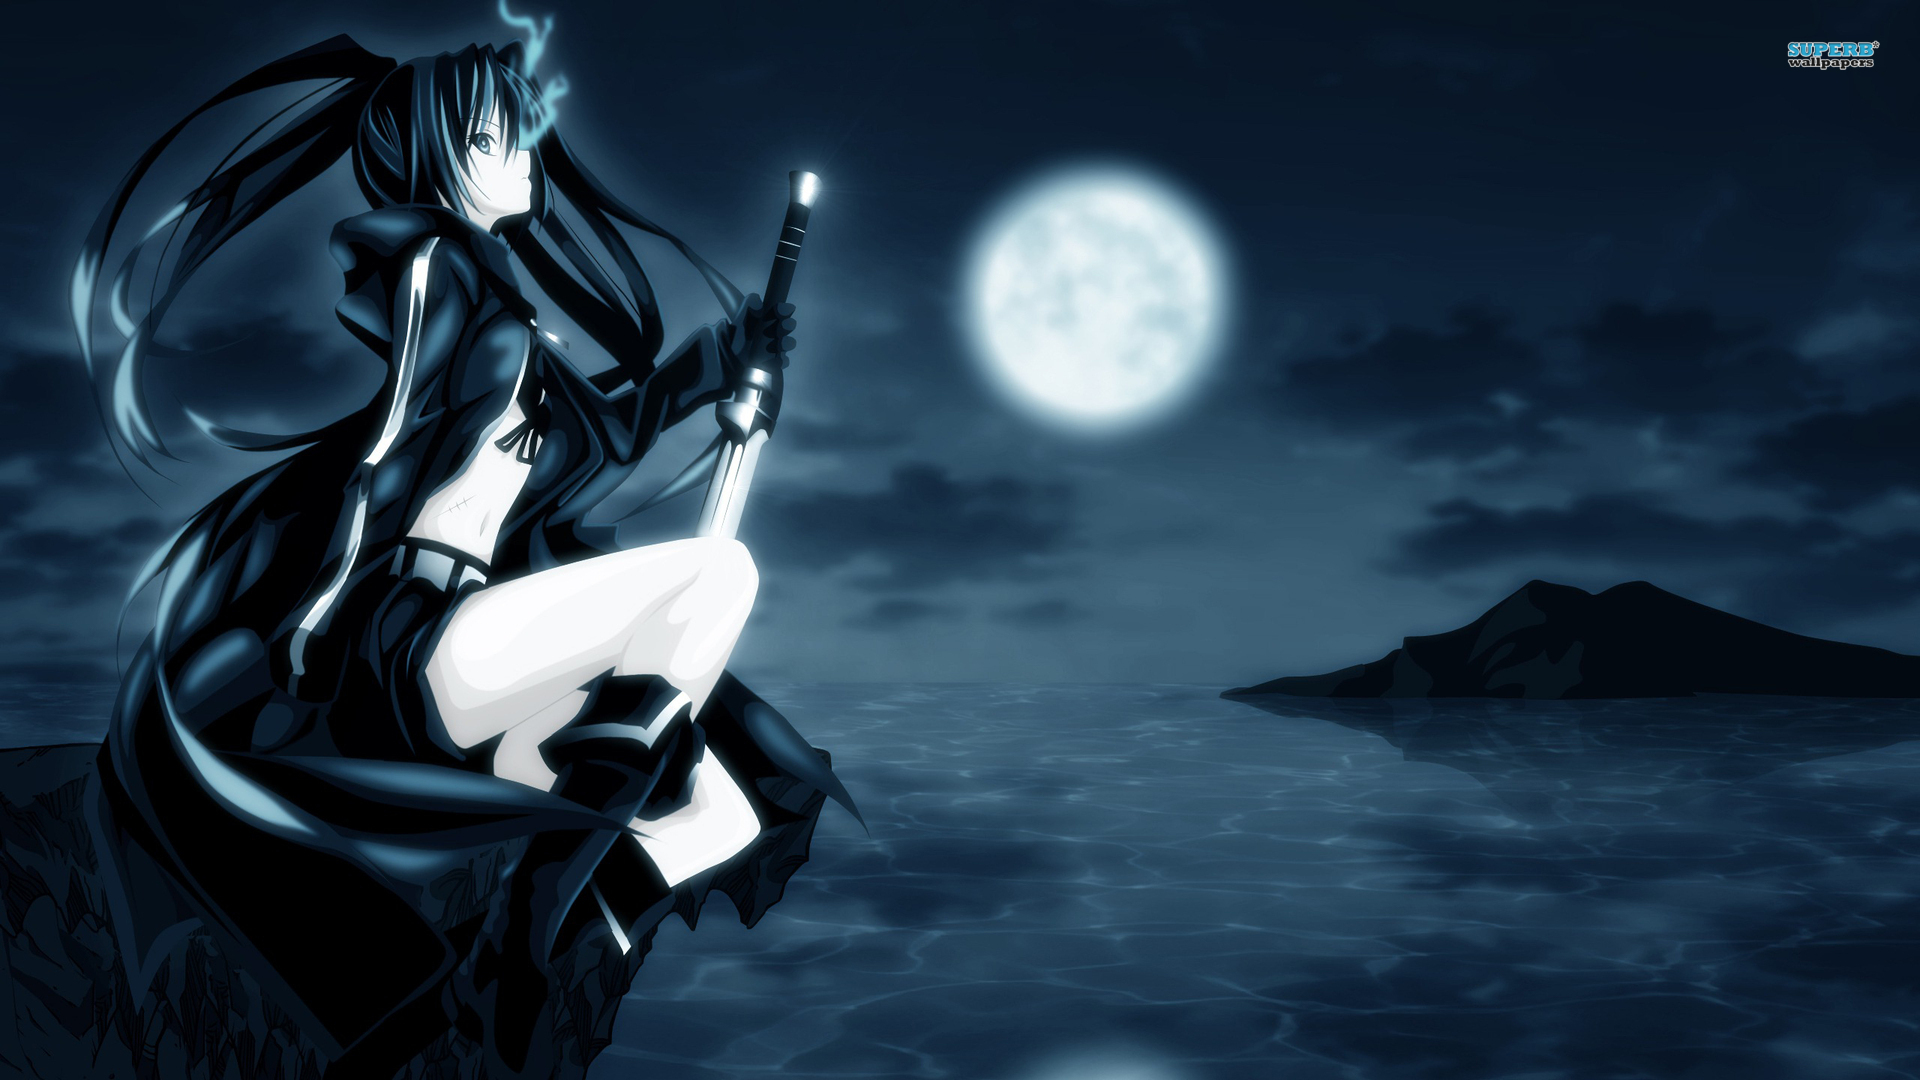 katzneko! images black☆rock shooter hd wallpaper and background